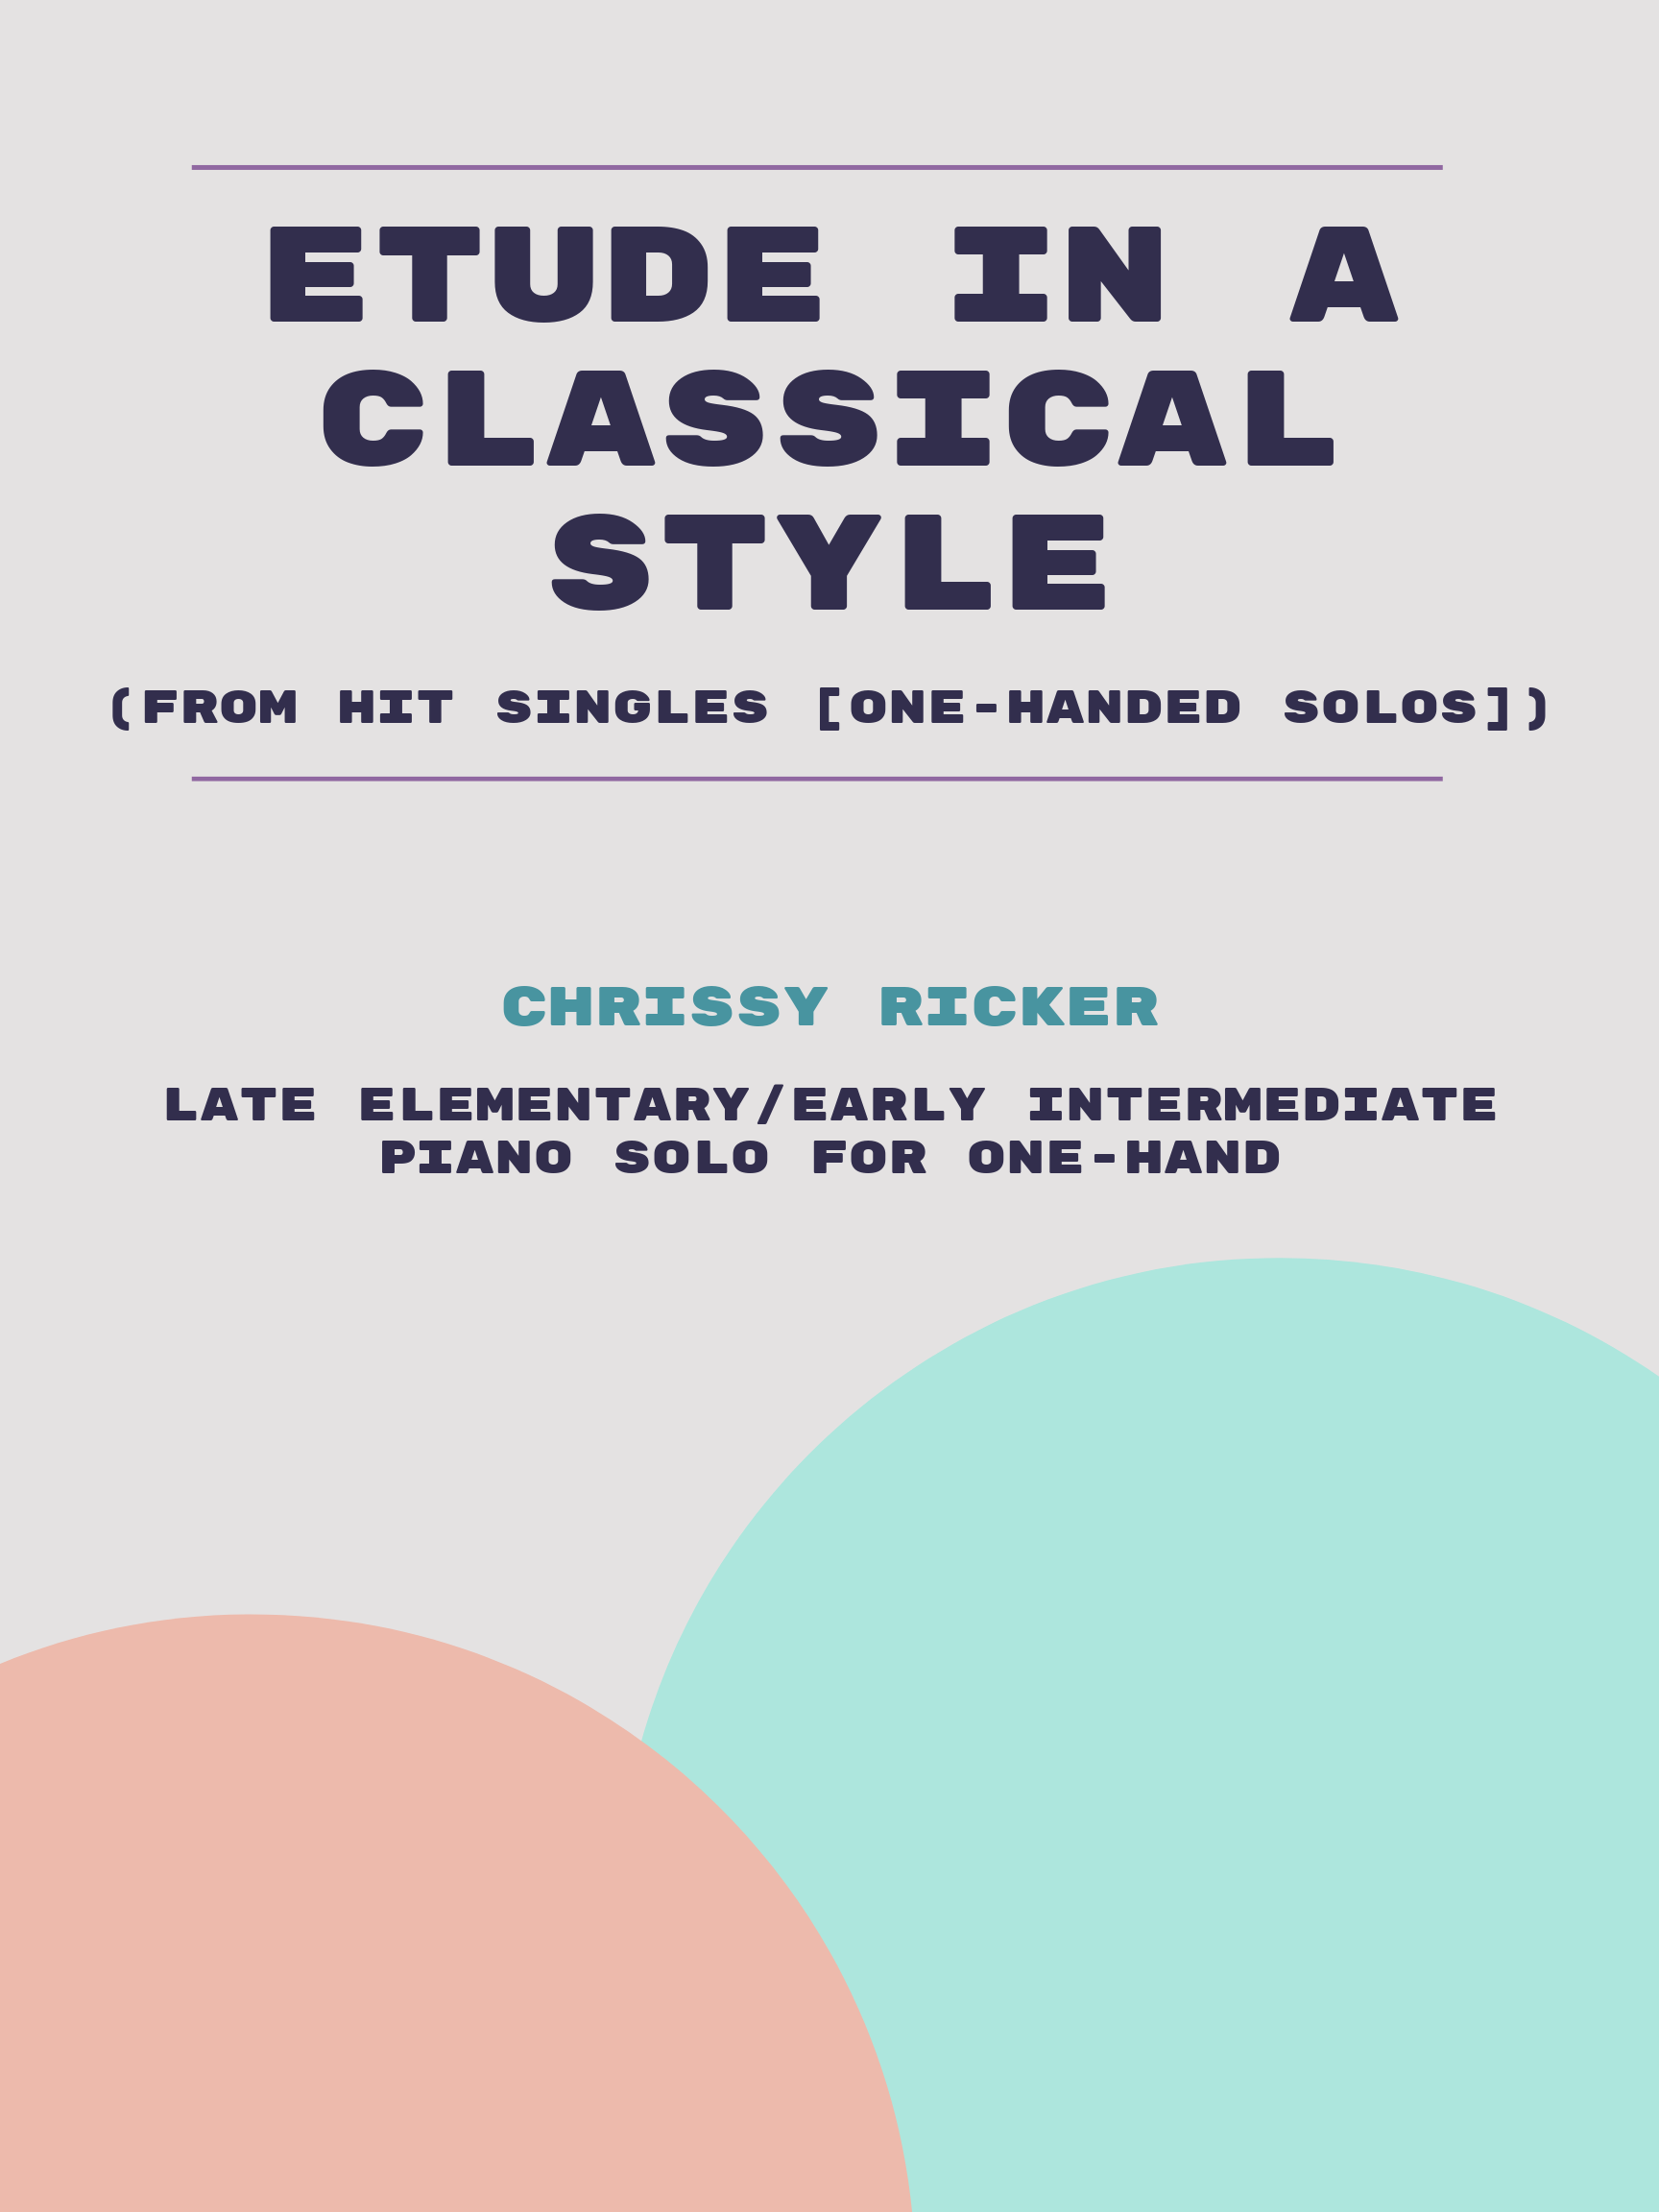 Etude in a Classical Style by Chrissy Ricker